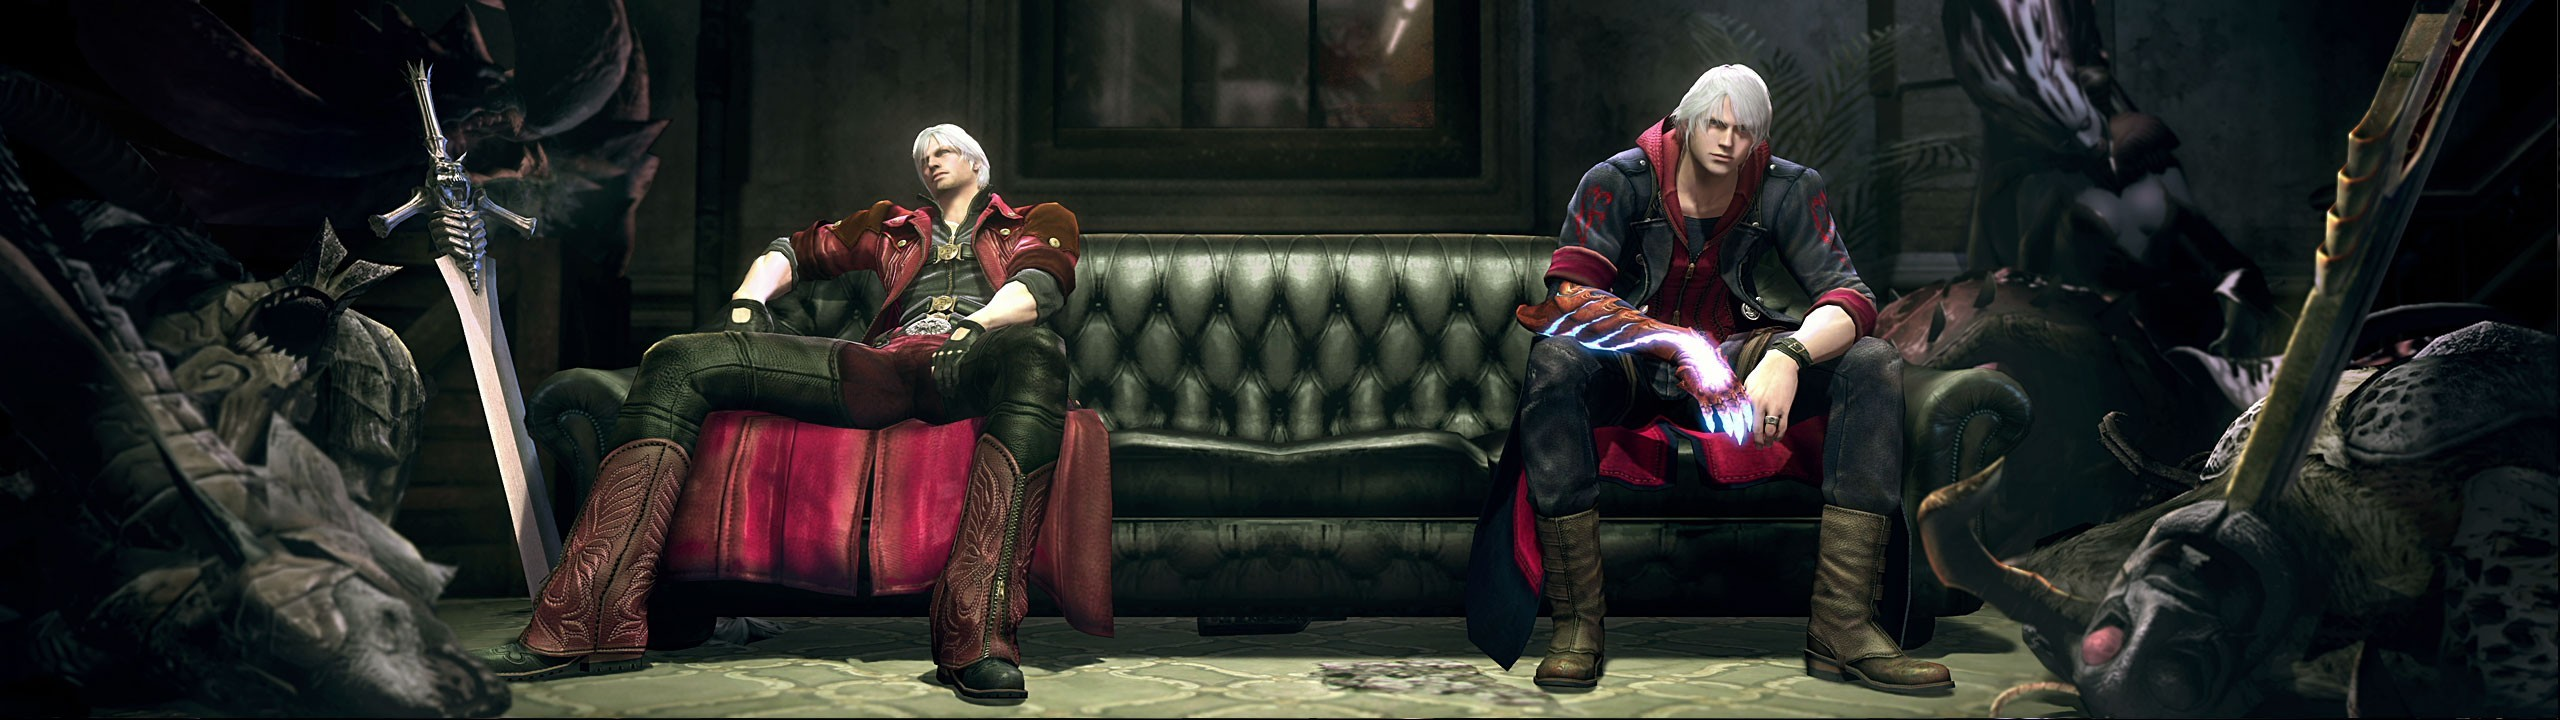 devil may cry HD Wallpaper